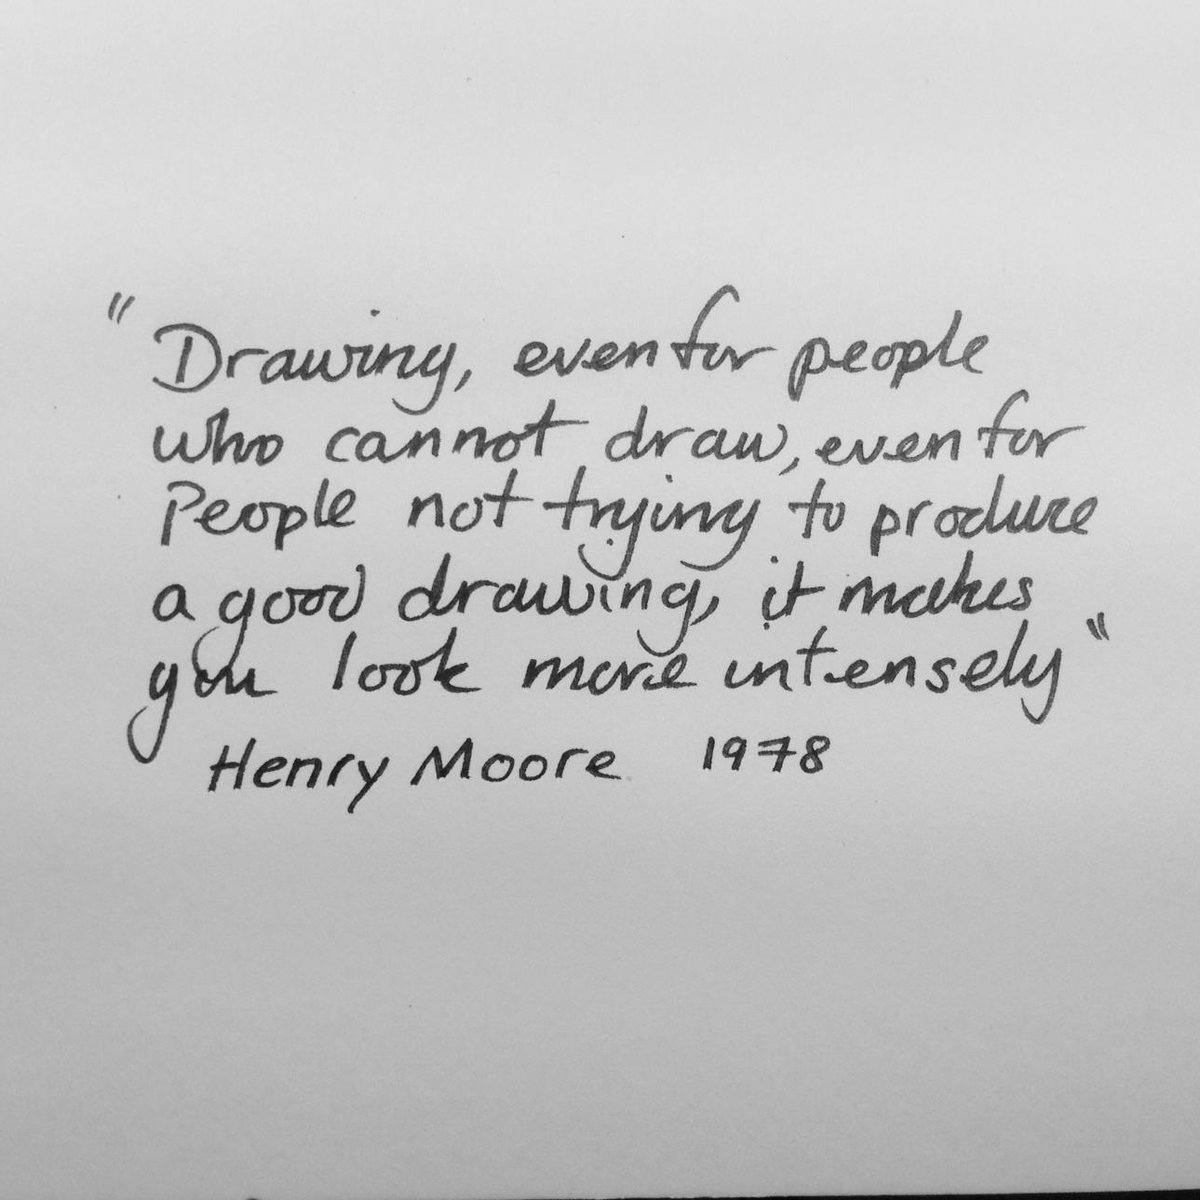 Excellent quote by Henry Moore @waddesdon_manor about #drawing #BigDraw #draw http://t.co/eCdxfMZYC3